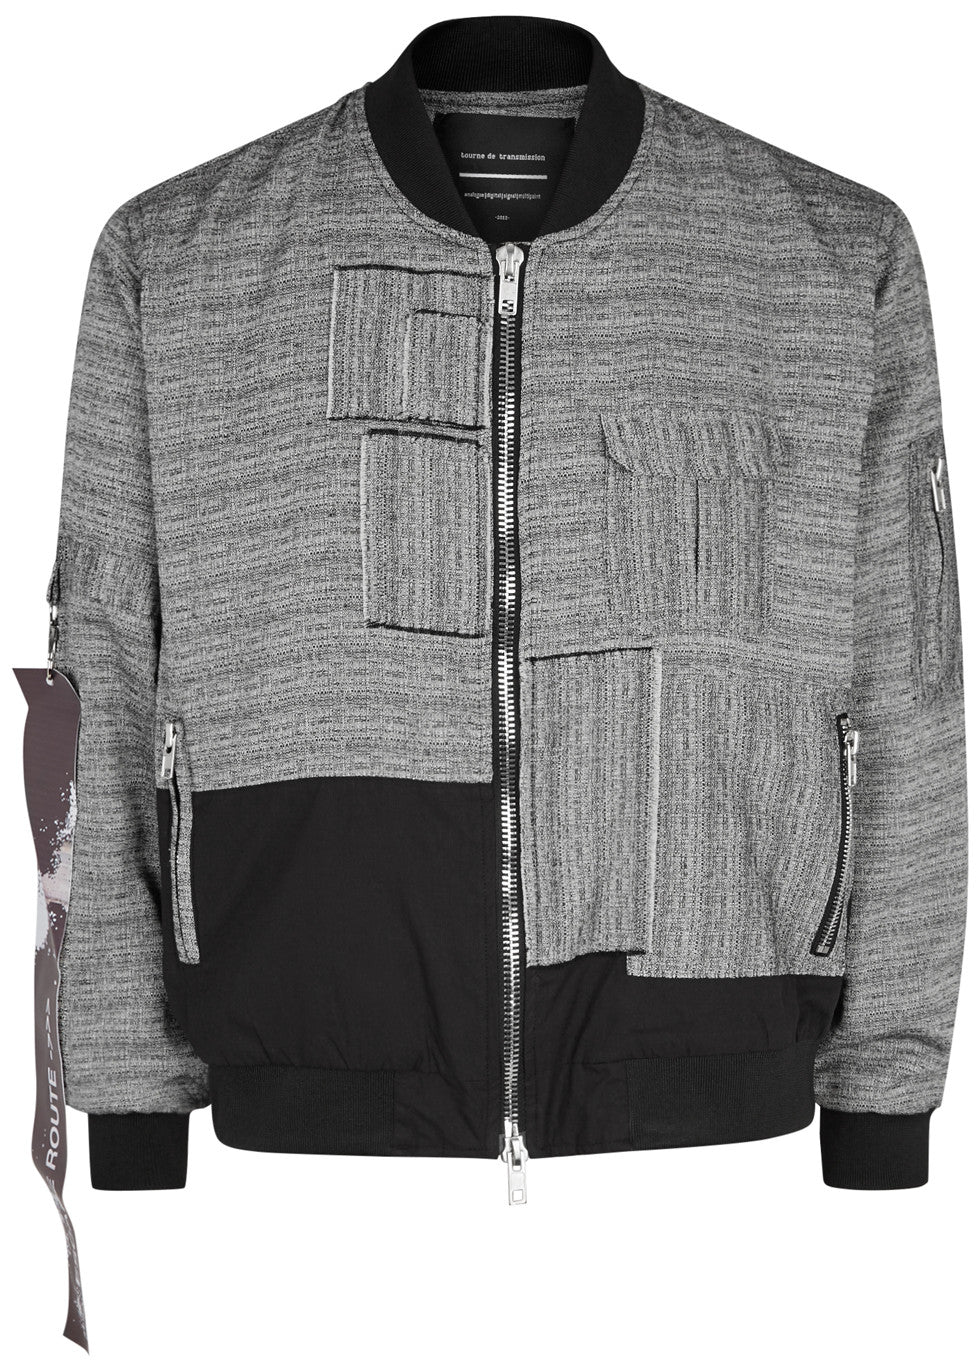 BOLT BOMBER JACKET